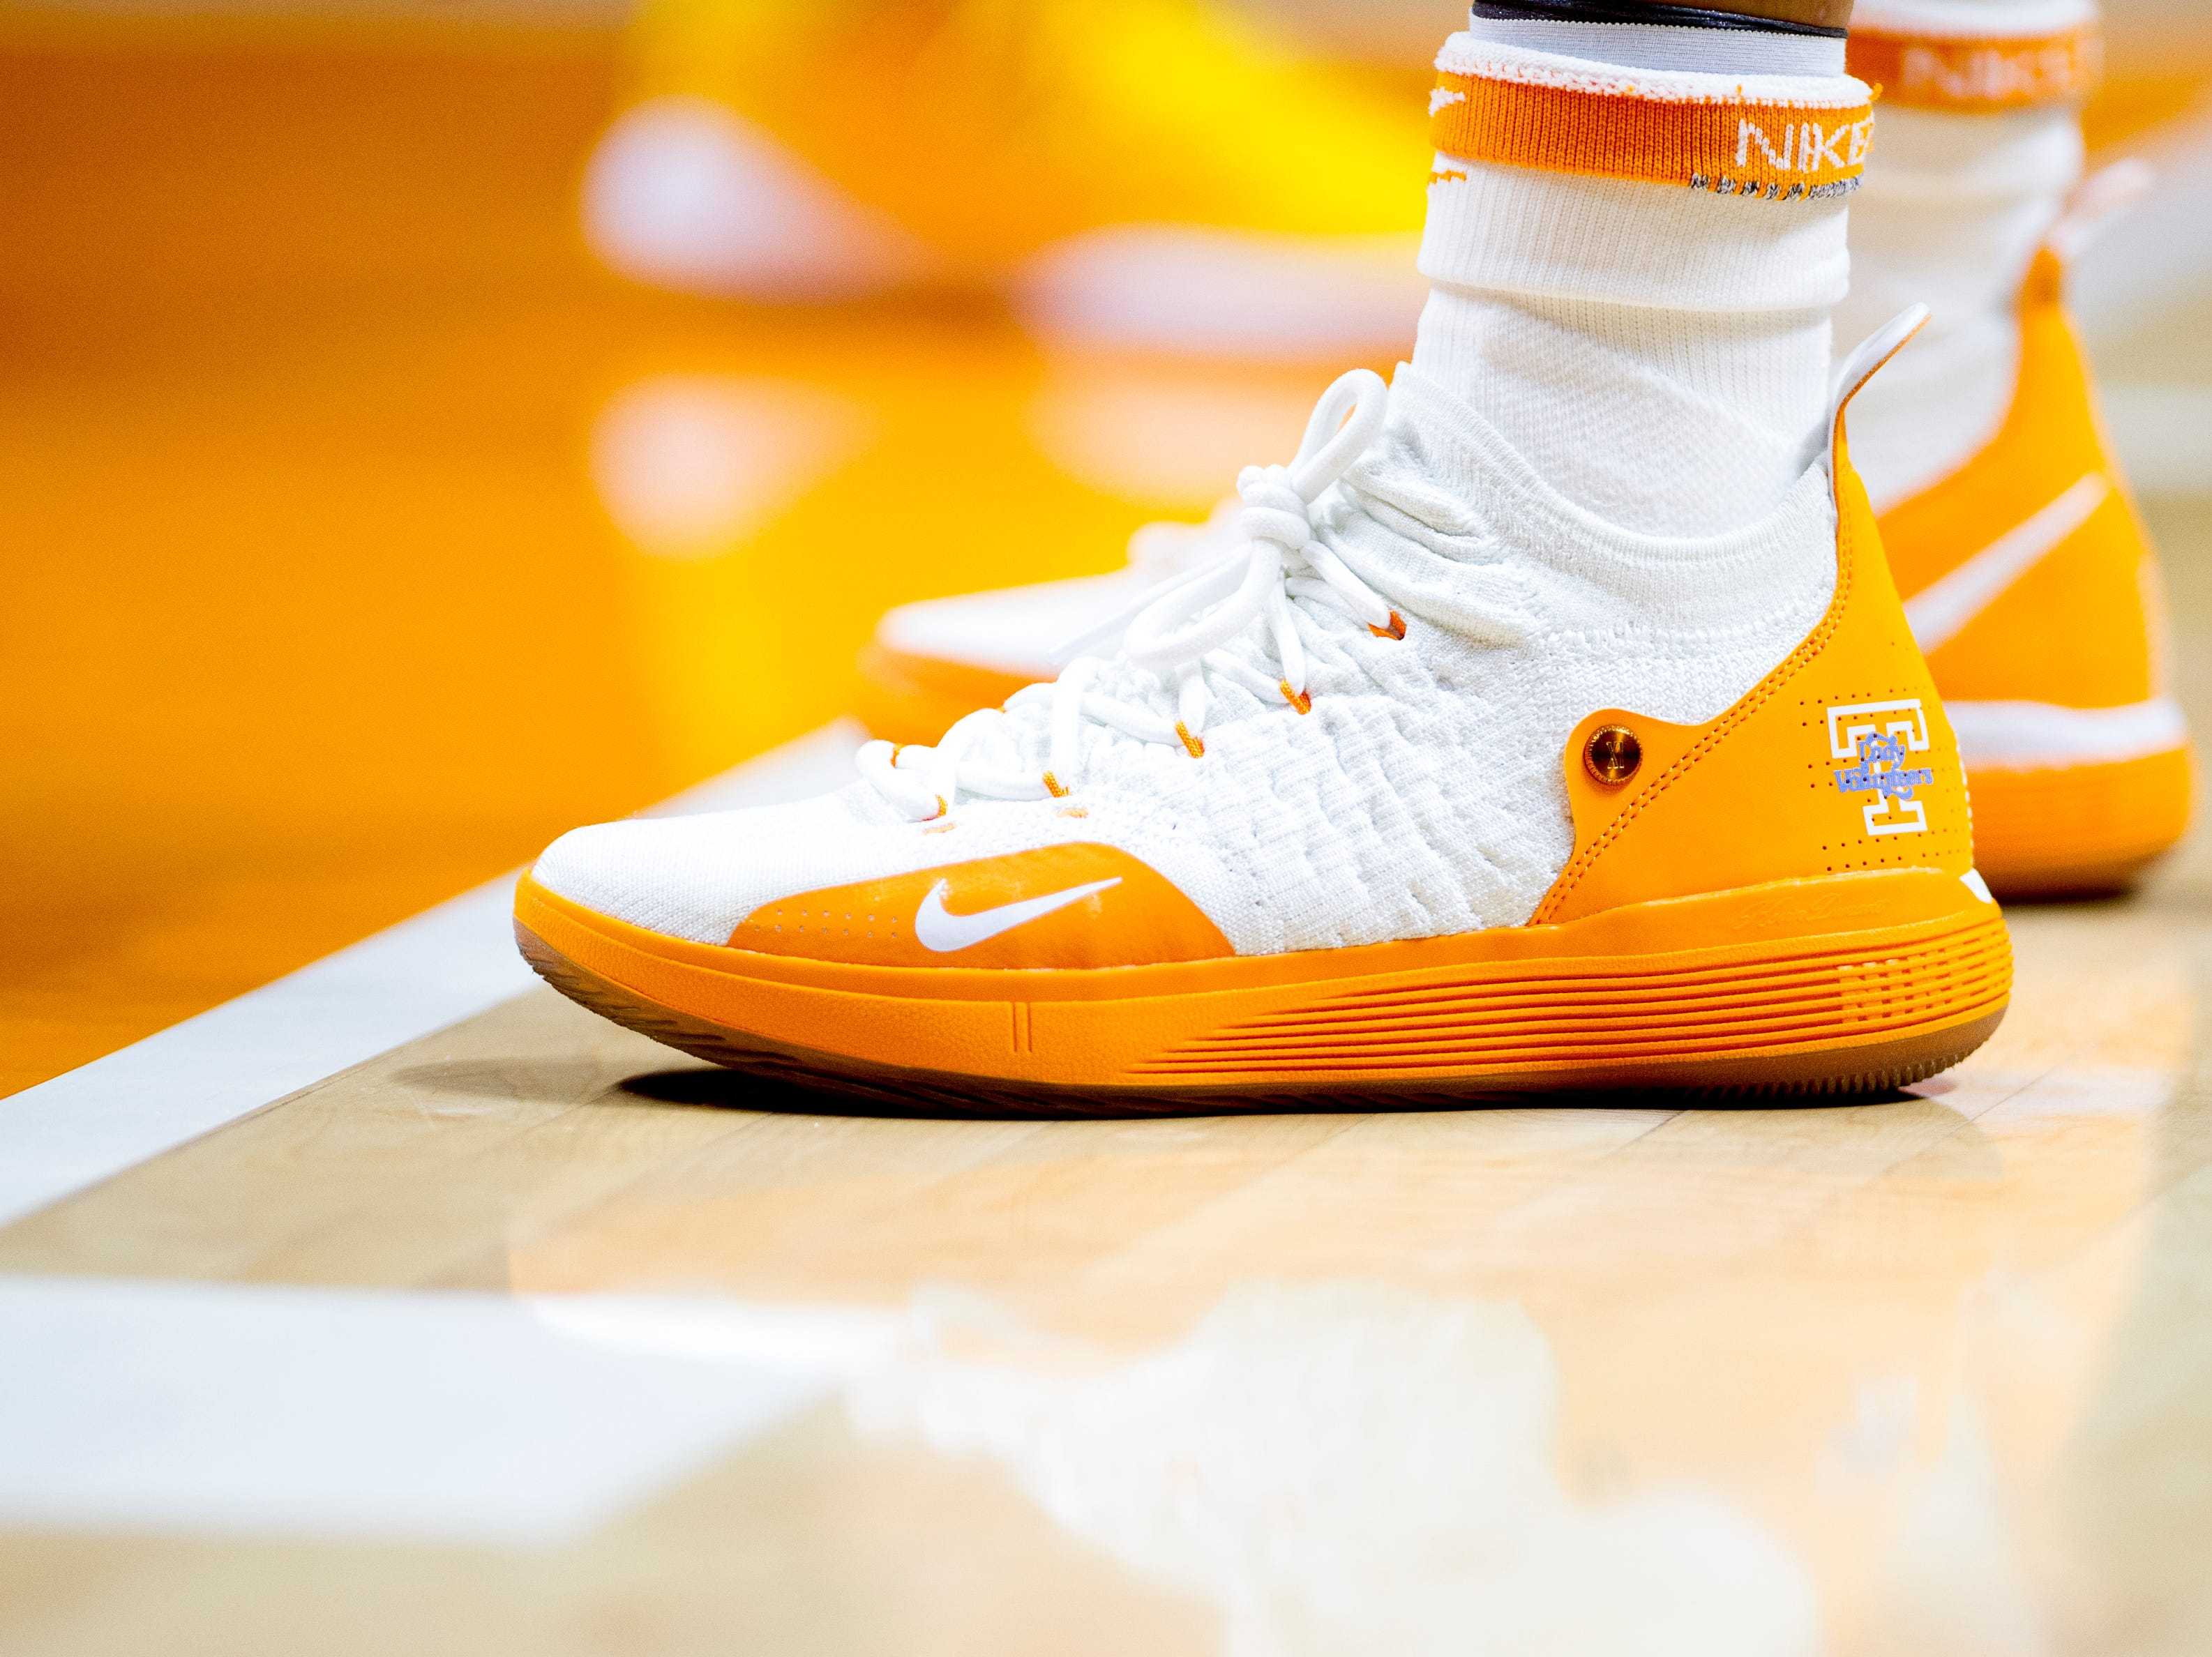 A Tennessee player wears Lady Vols shoes during a game between the Tennessee Lady Vols and Murray State at Thompson-Boling Arena in Knoxville, Tennessee on Friday, December 28, 2018.